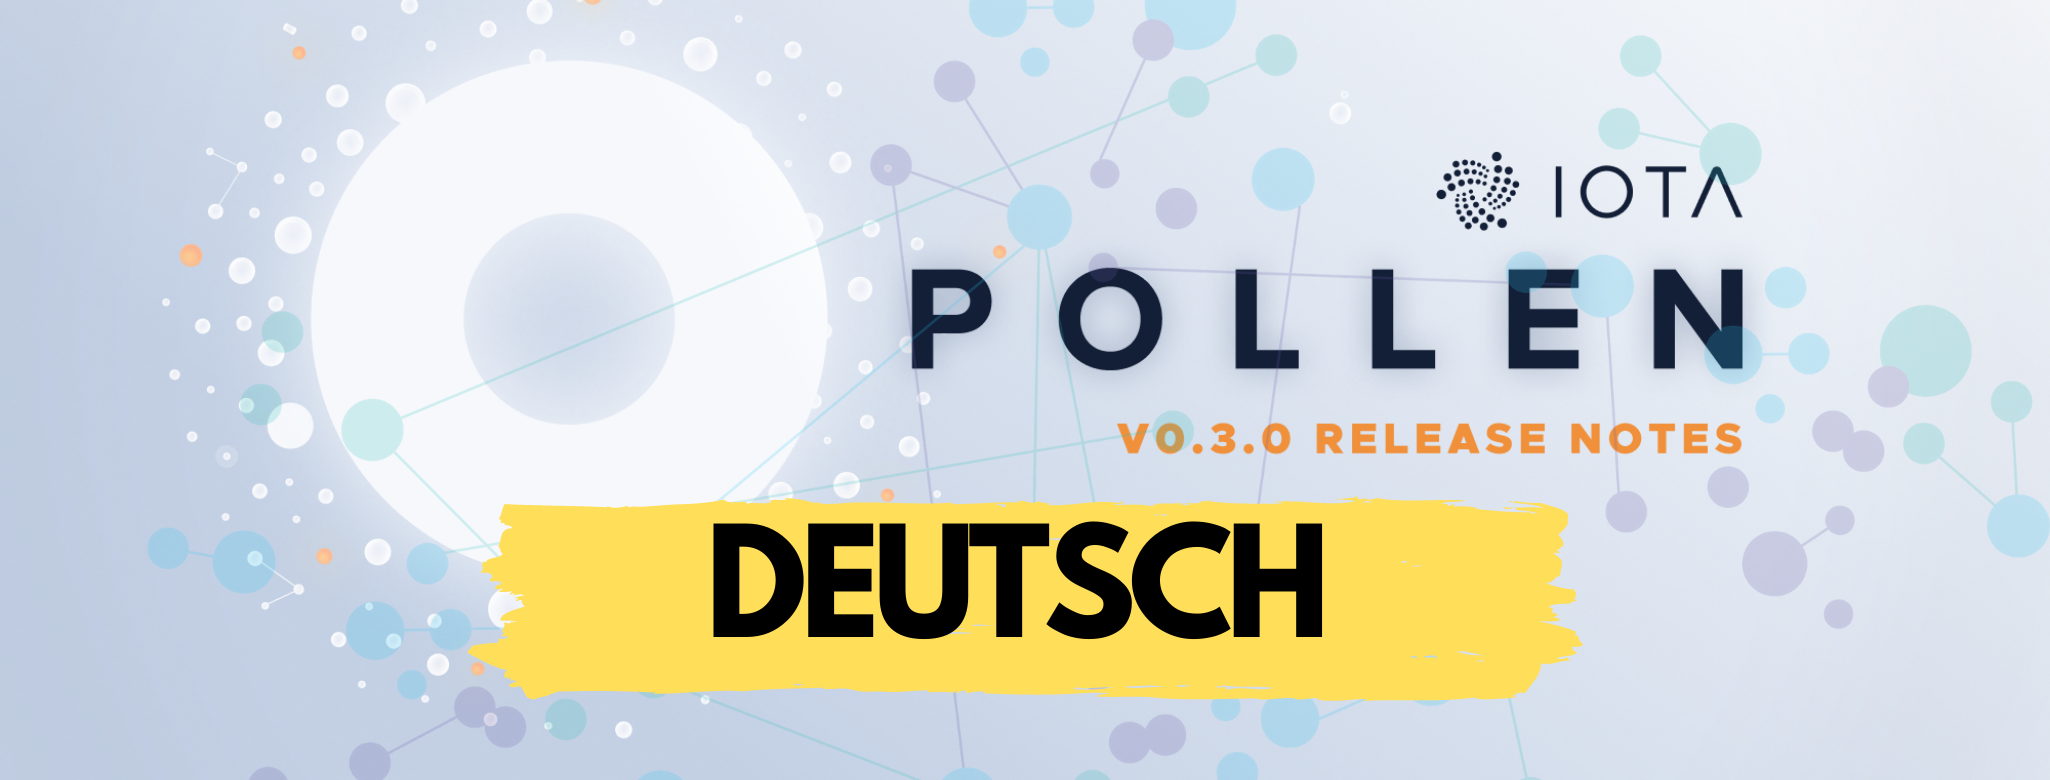 Pollen 0.3.0 deutsch update iota